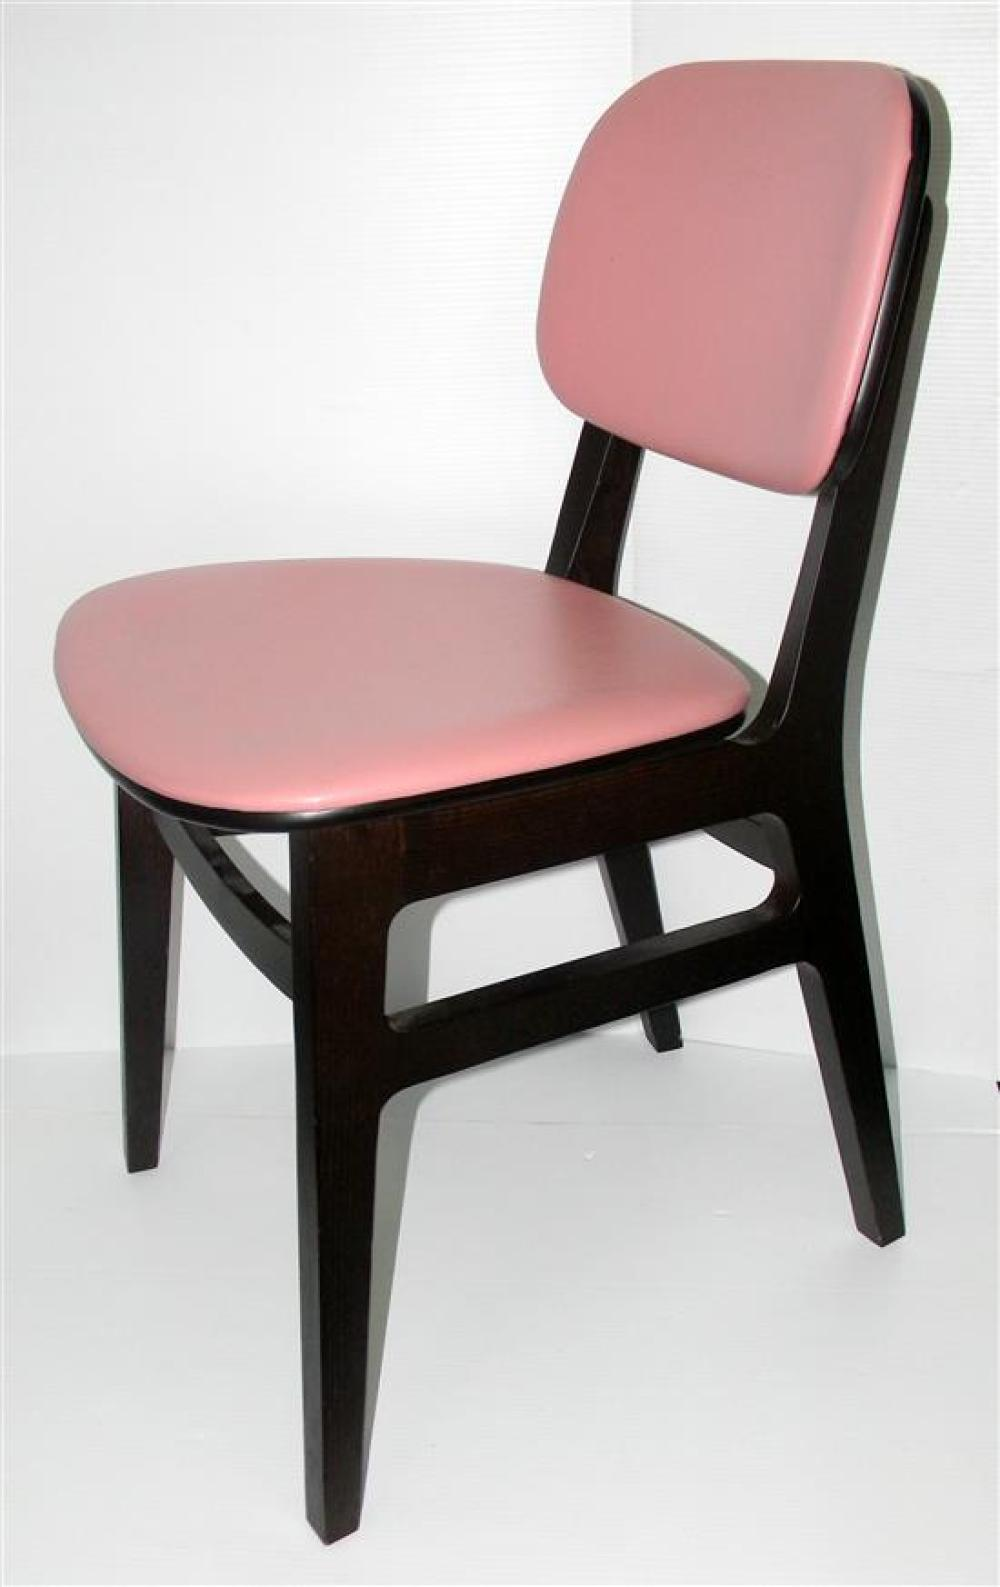 Five Indentity Furniture XKITI Upholstered Dining chairs (RRP$500 each) in stained solid Eurpoean Ash